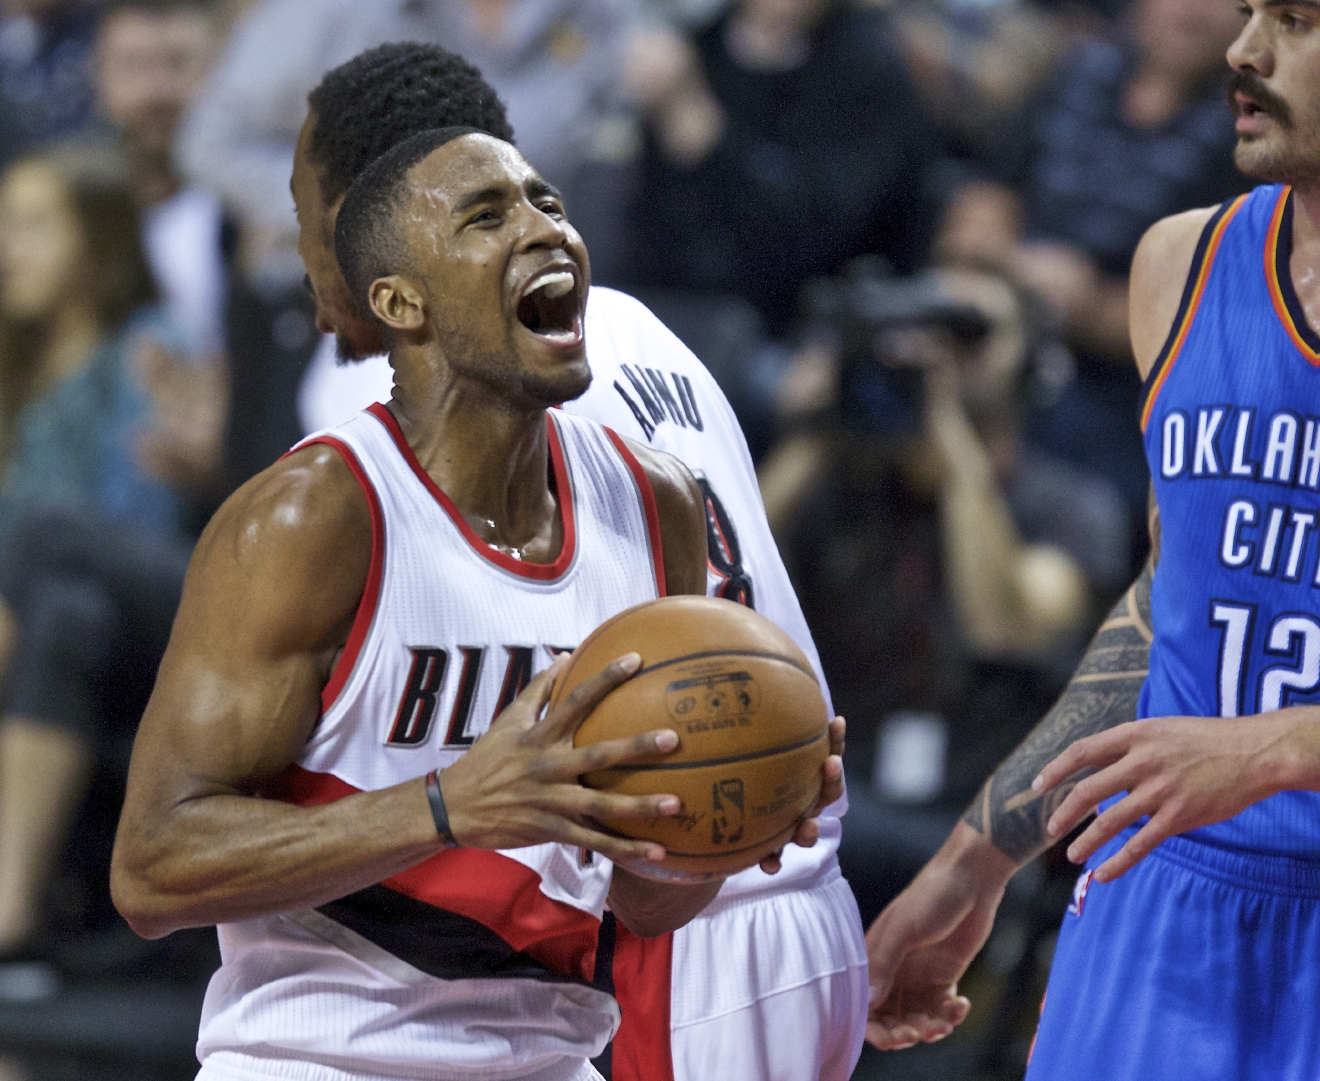 Portland Trail Blazers forward Maurice Harkless, left, reacts after scoring a basket against Oklahoma City Thunder center Steven Adams, right, during the first half of an NBA basketball game in Portland, Ore., Wednesday, April 6, 2016. (AP Photo/Craig Mitchelldyer)